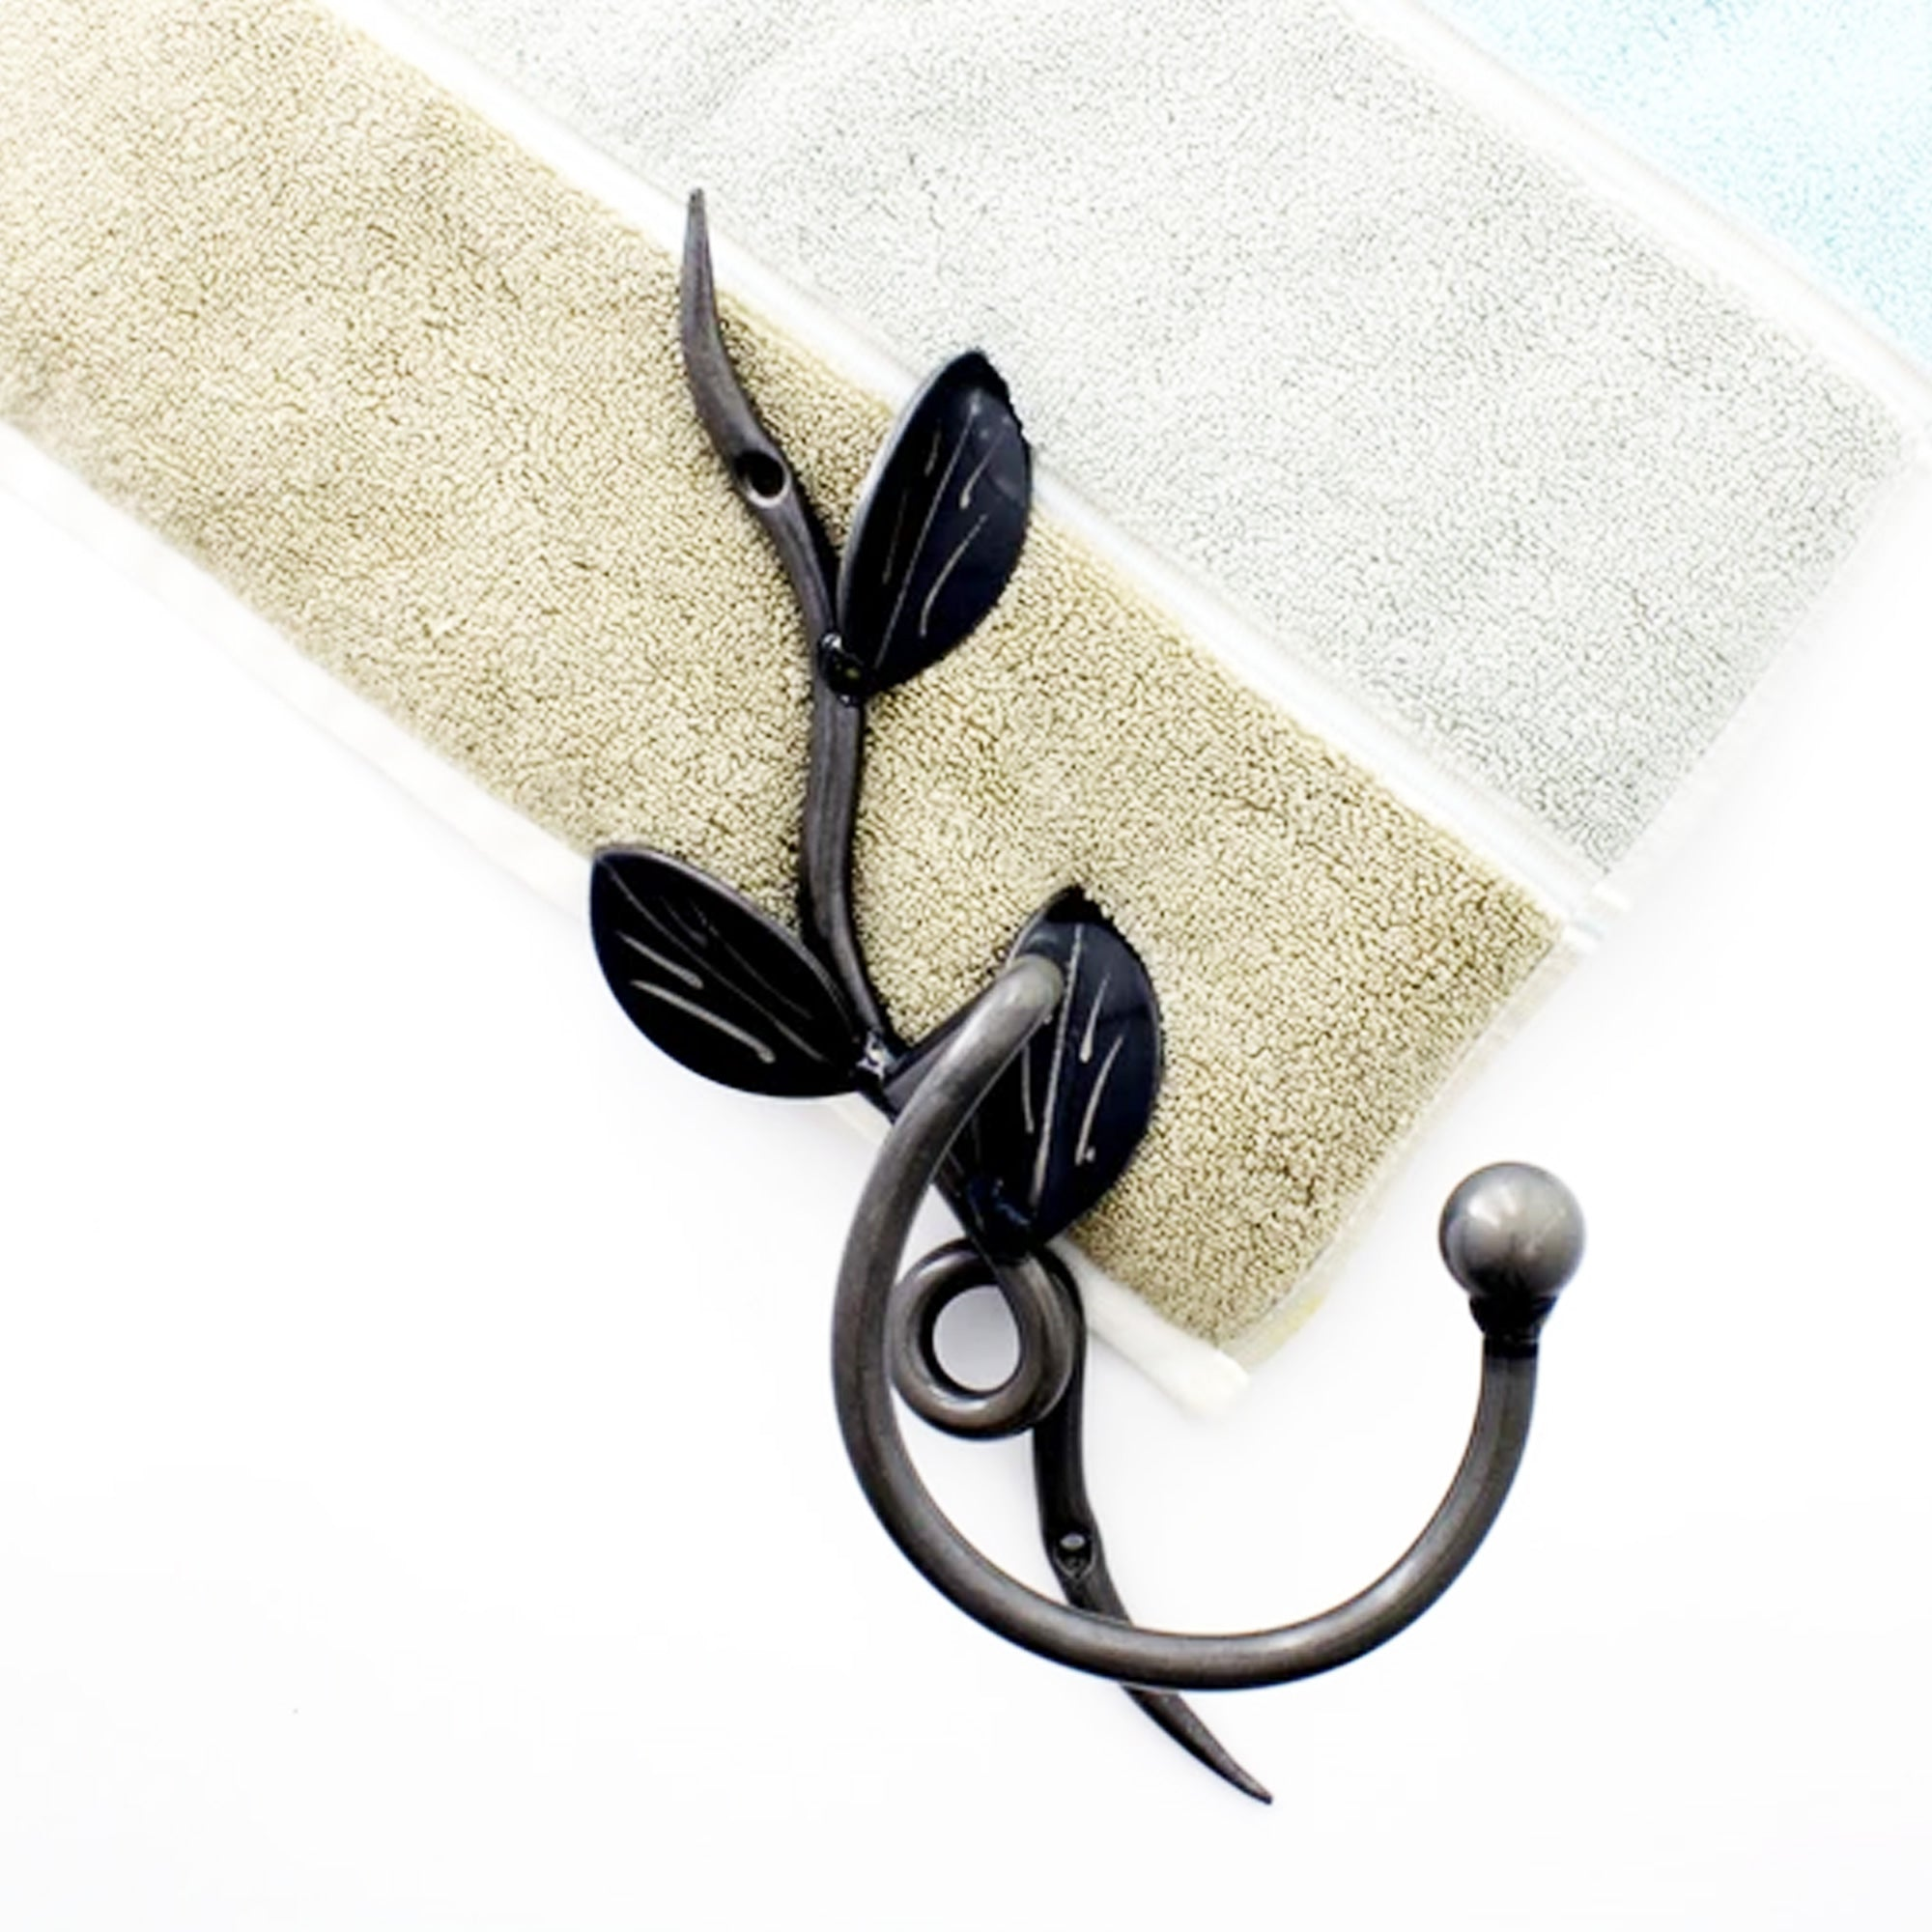 Metal Vine Towel Hook: Wall-mounted Ornamental Towel Hooks